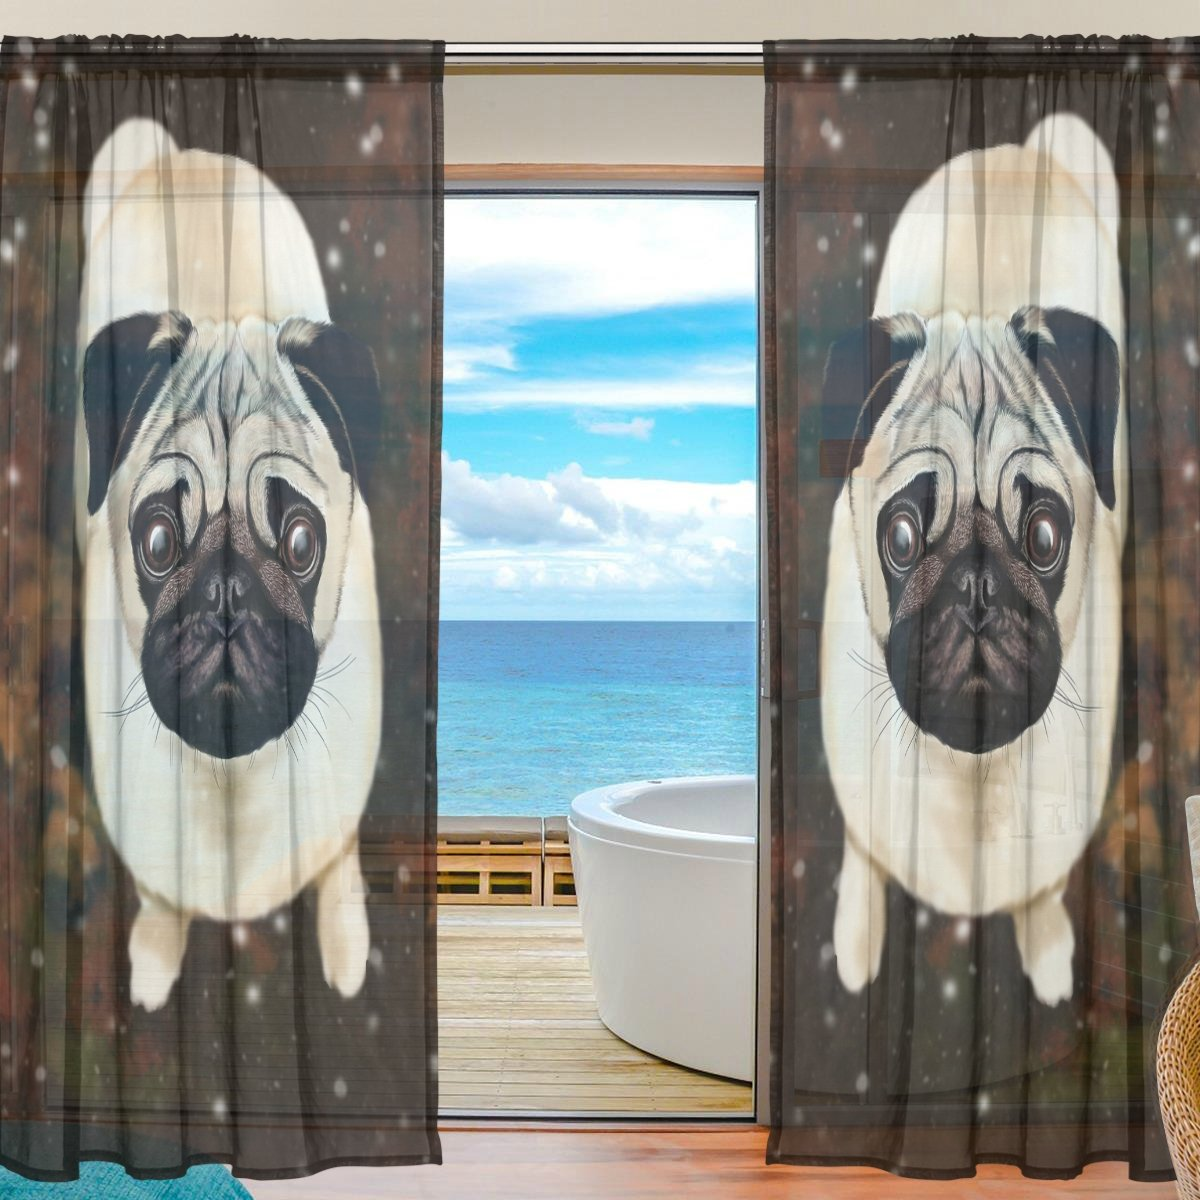 SEULIFE Window Sheer Curtain, Cute Animal Pug Dog Art Painting Voile Curtain Drapes for Door Kitchen Living Room Bedroom 55x78 inches 2 Panels